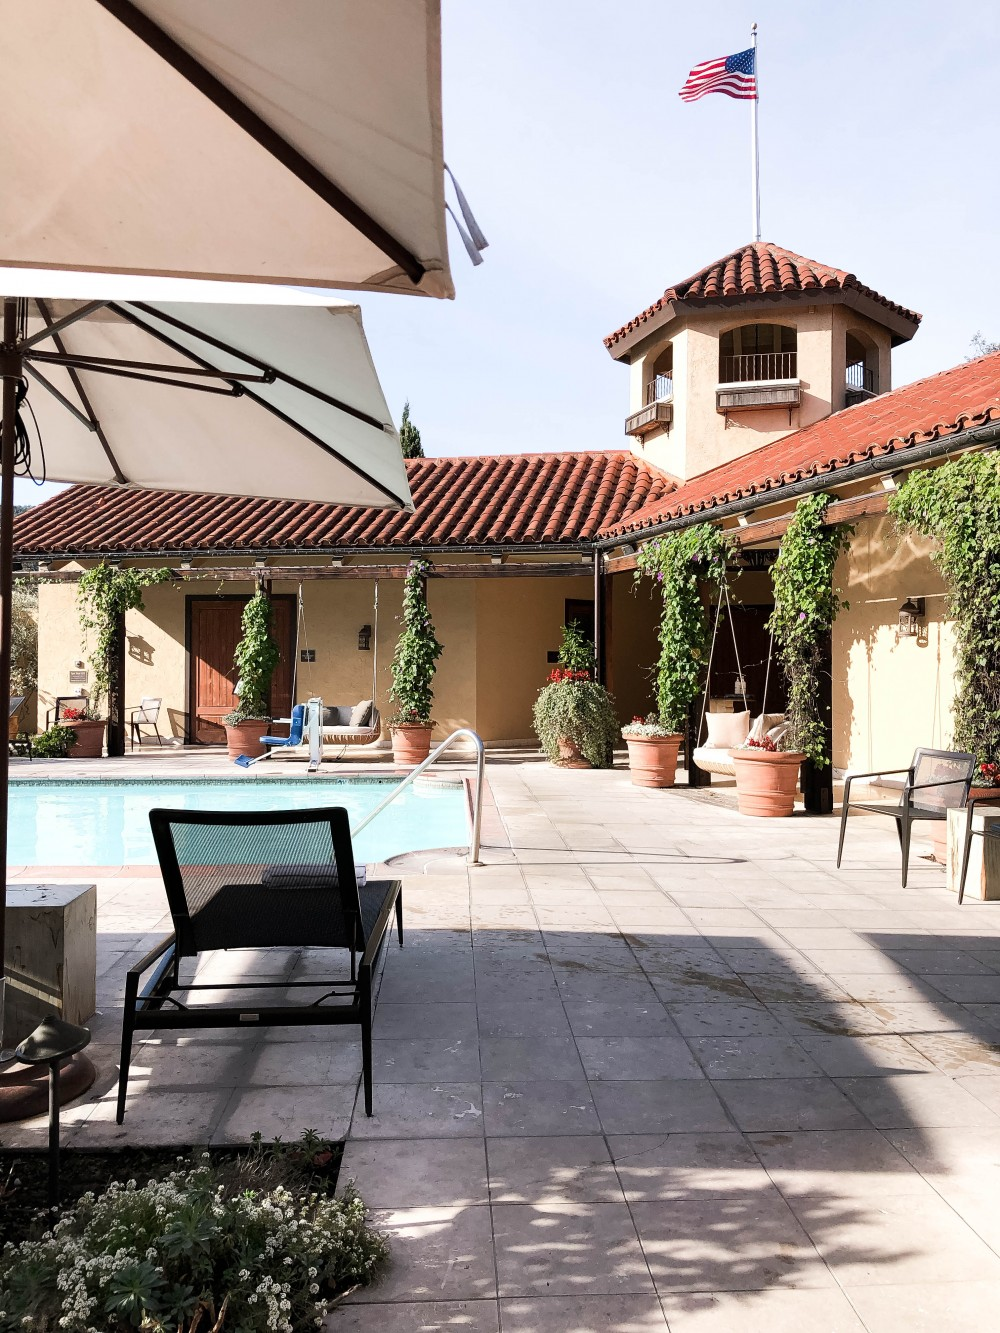 Napa Valley Lodge in Yountville, CA | Have Need Want